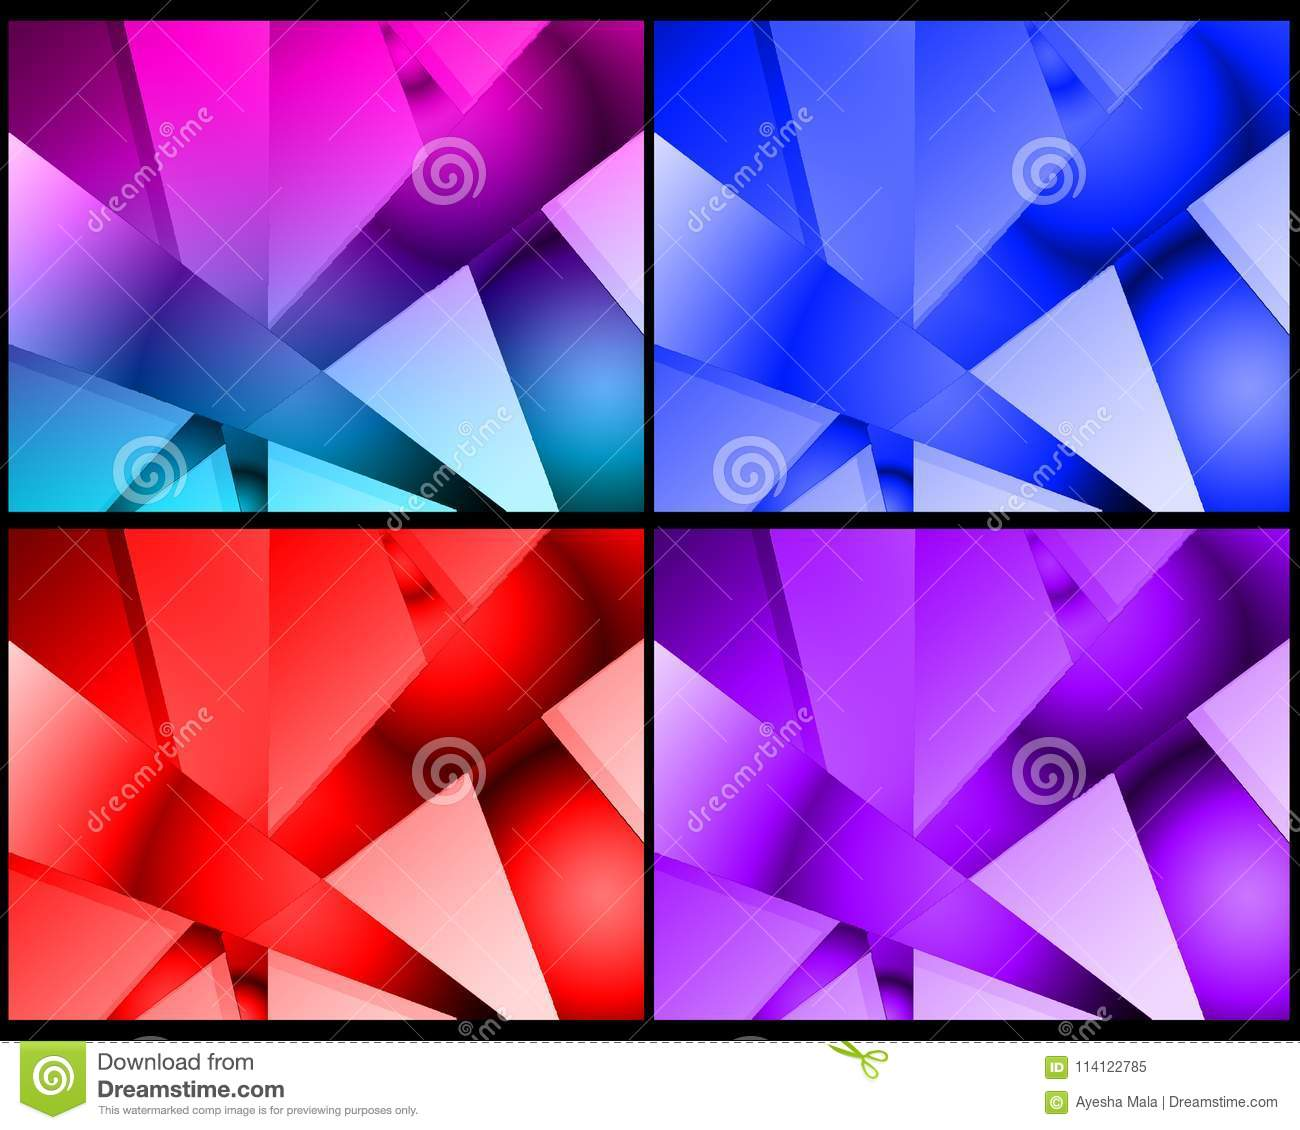 Colorful Abstract Digital Shape, Pack Of 4 Different Color Designs ...